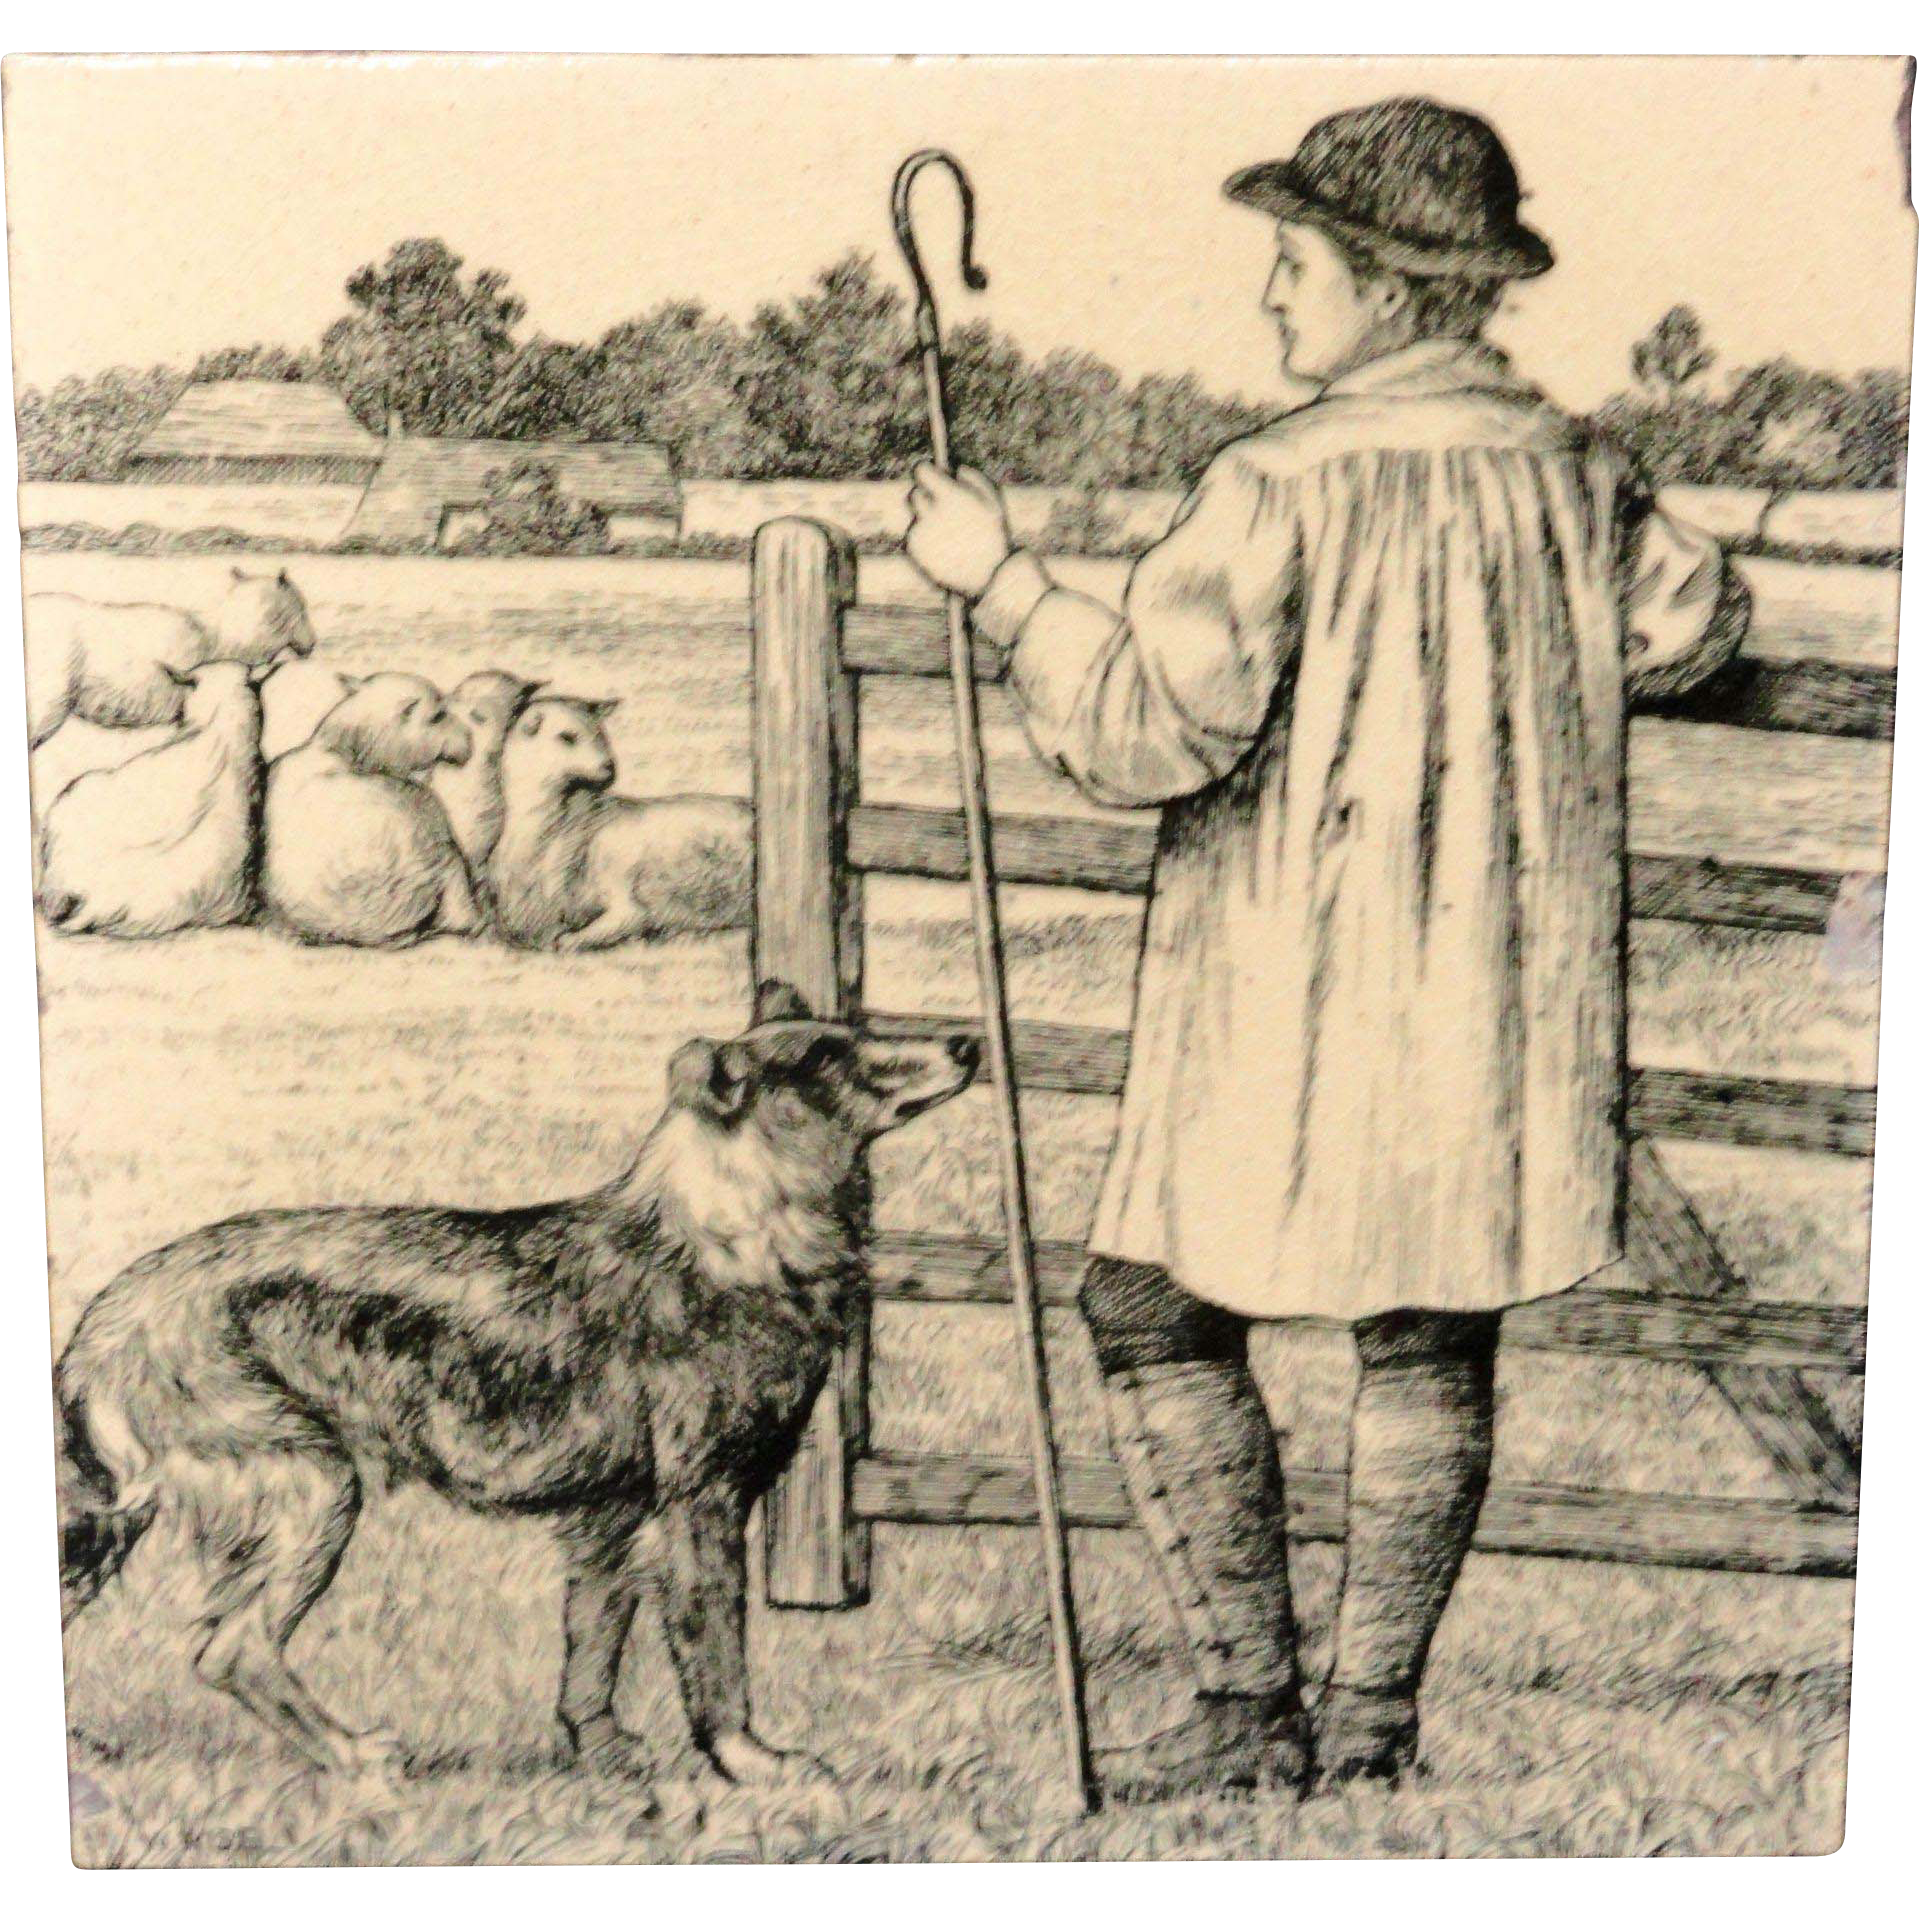 Signed Minton Tile ~ Wm Wise Farm ~ Sheep Sheppard 1879